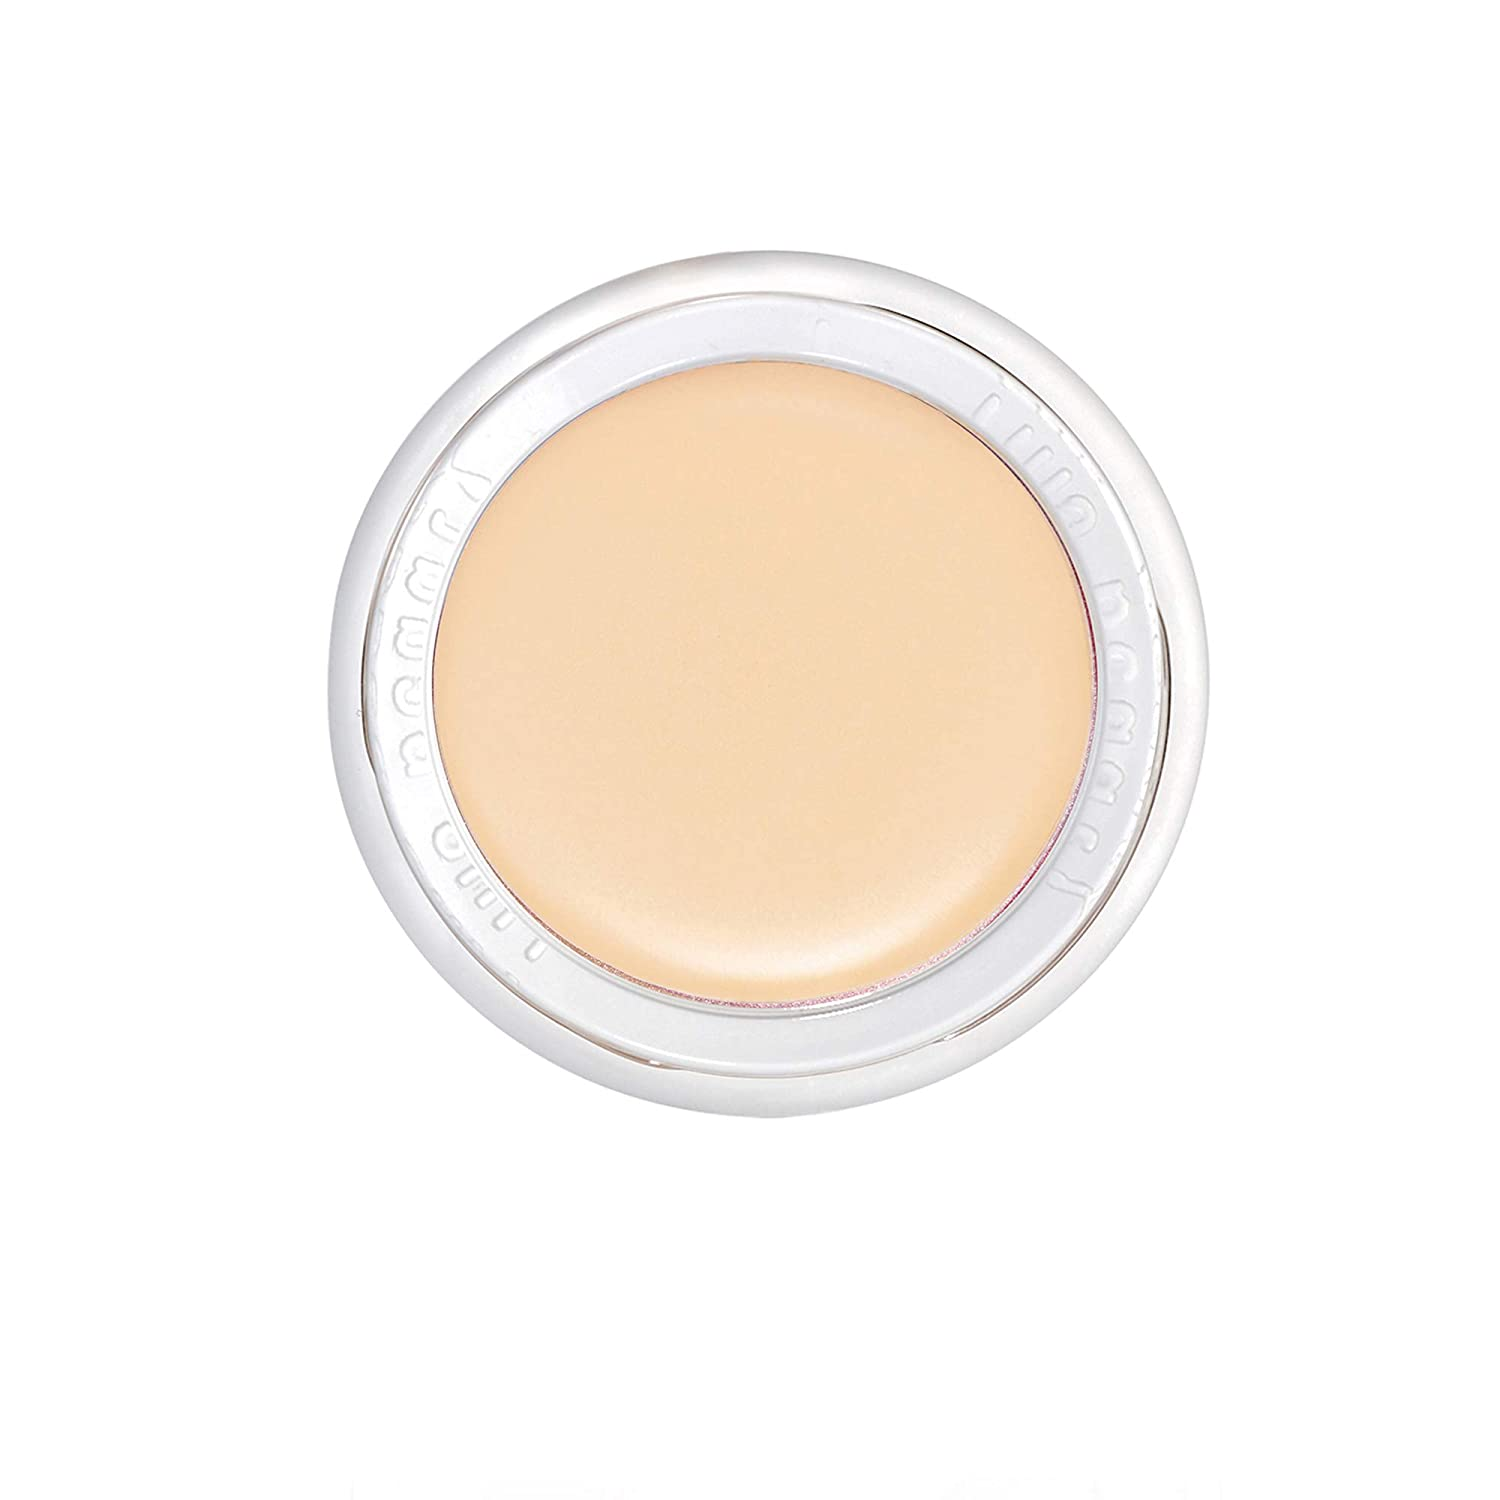 "RMS Beauty ""Un"" Cover-Up Concealer - Organic Cream Concealer & Foundation, Hydrating Face Makeup for Healthy Looking Skin - No.00 (0.2 Ounce)"